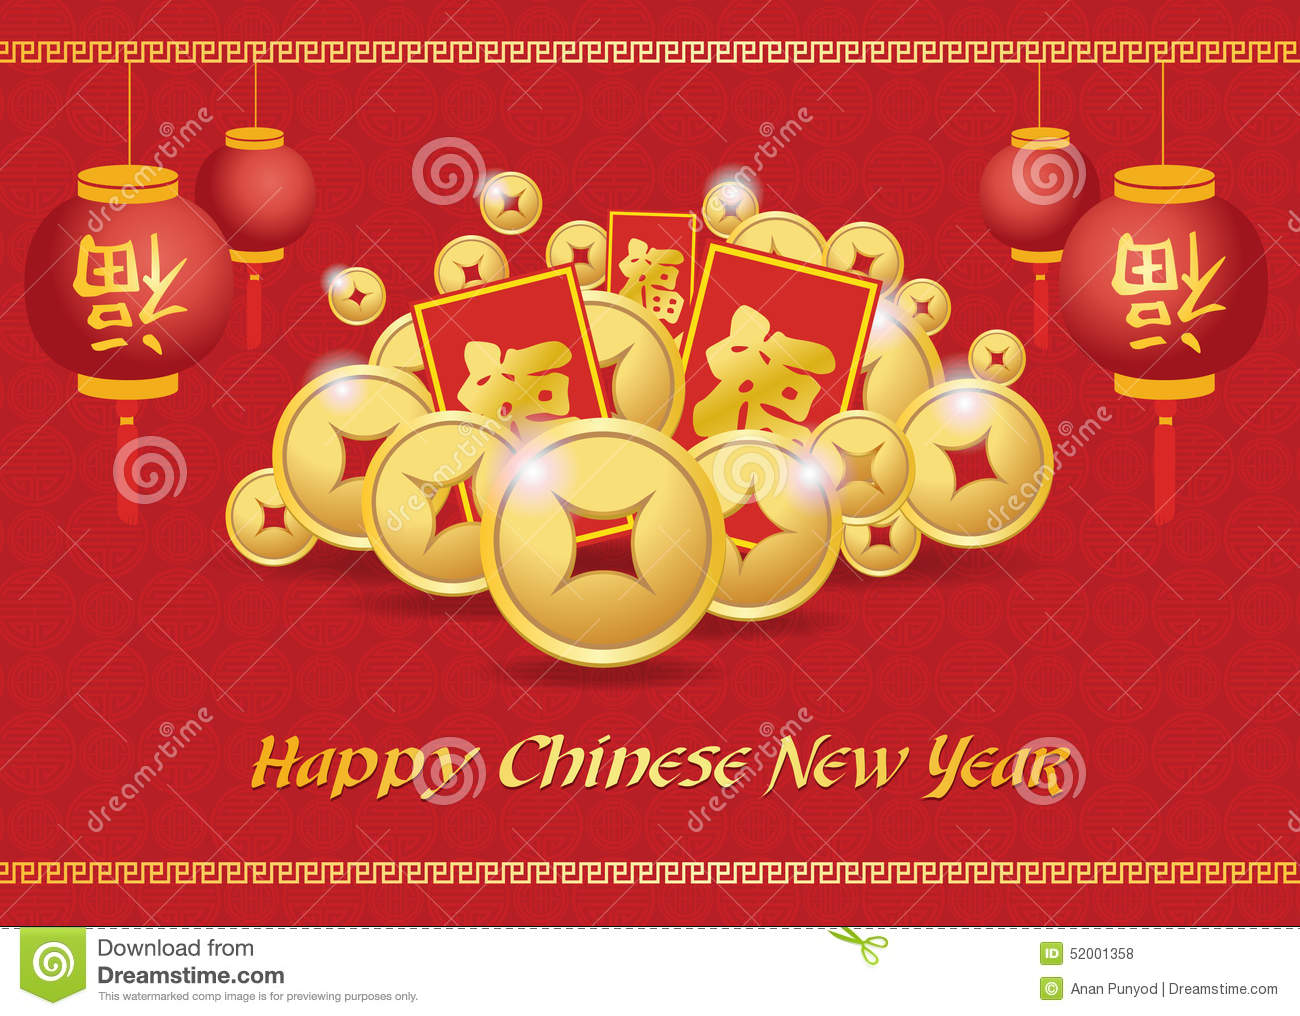 Chinese New Year In 2016 2 | New Hd Template images